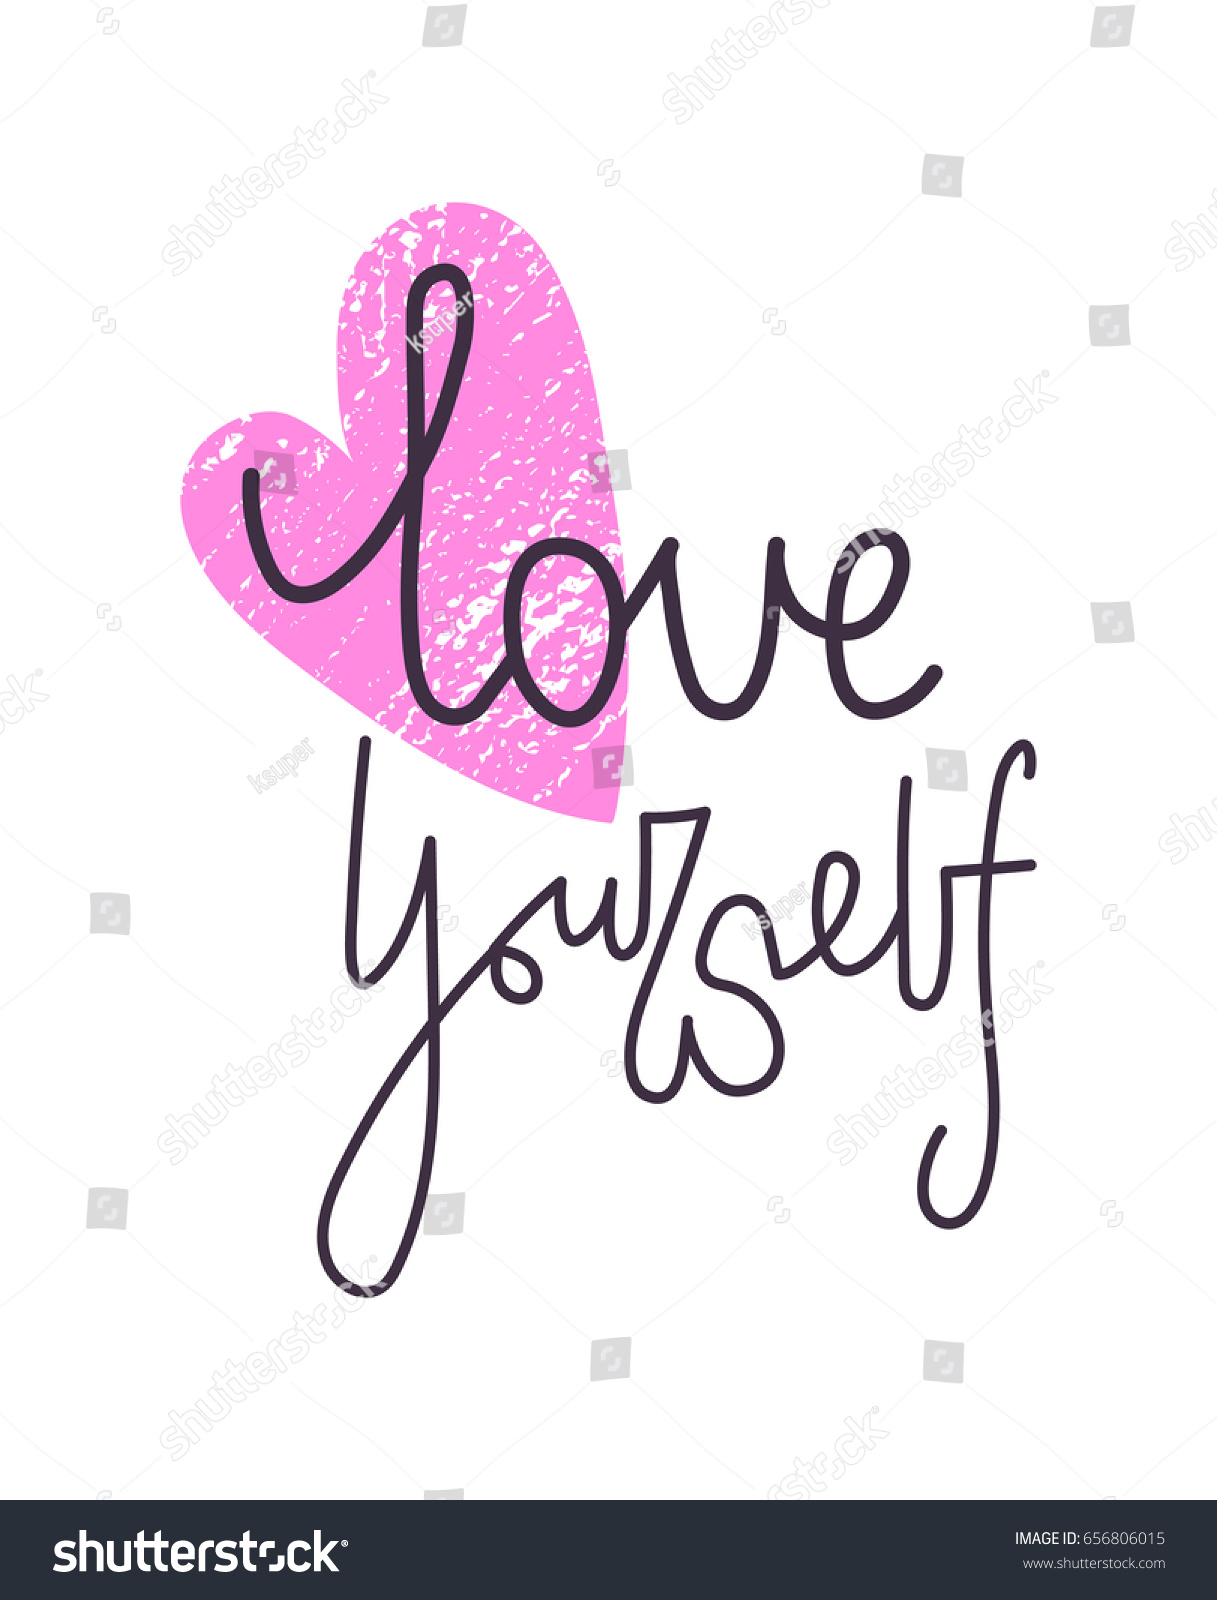 Love yourself motivating lettering pink textured stock vector love yourself motivating lettering with pink textured heart symbol on white background inspiring text buycottarizona